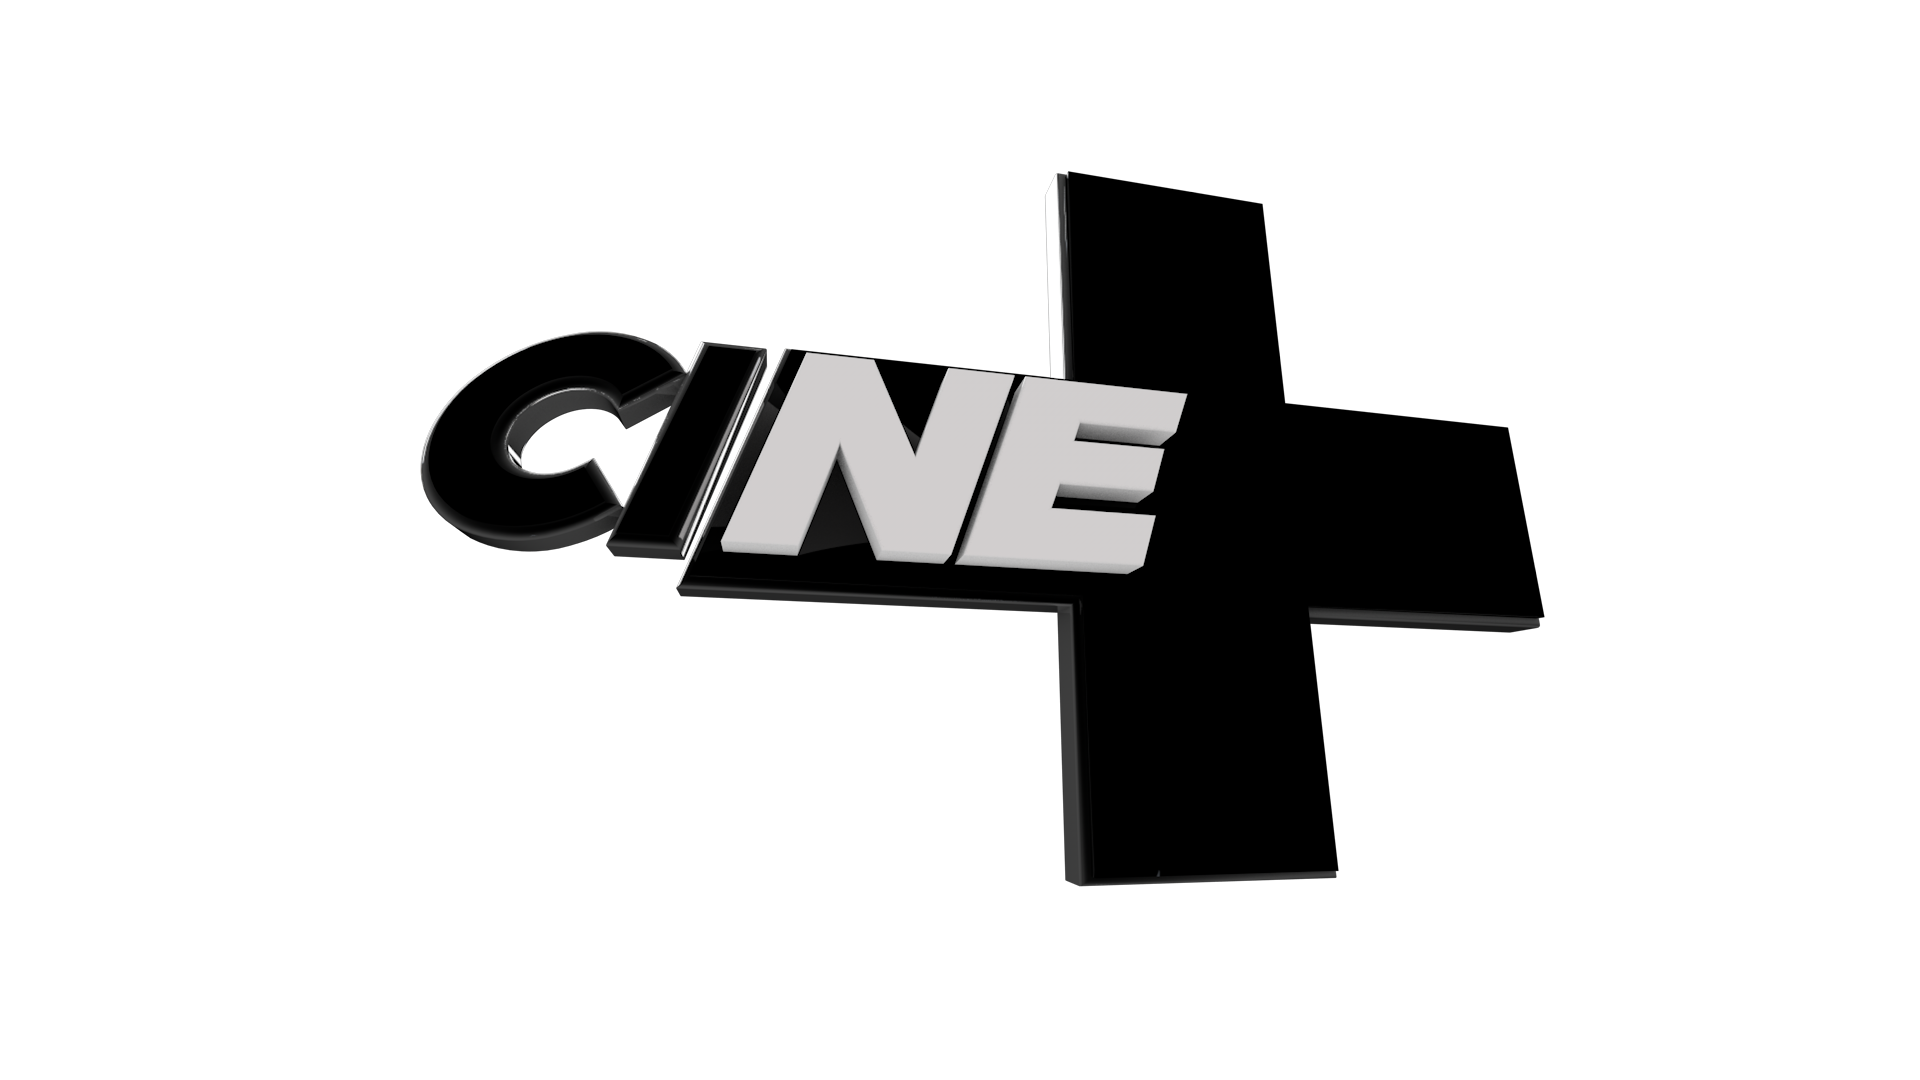 File Cine Logo Png Wikimedia Commons